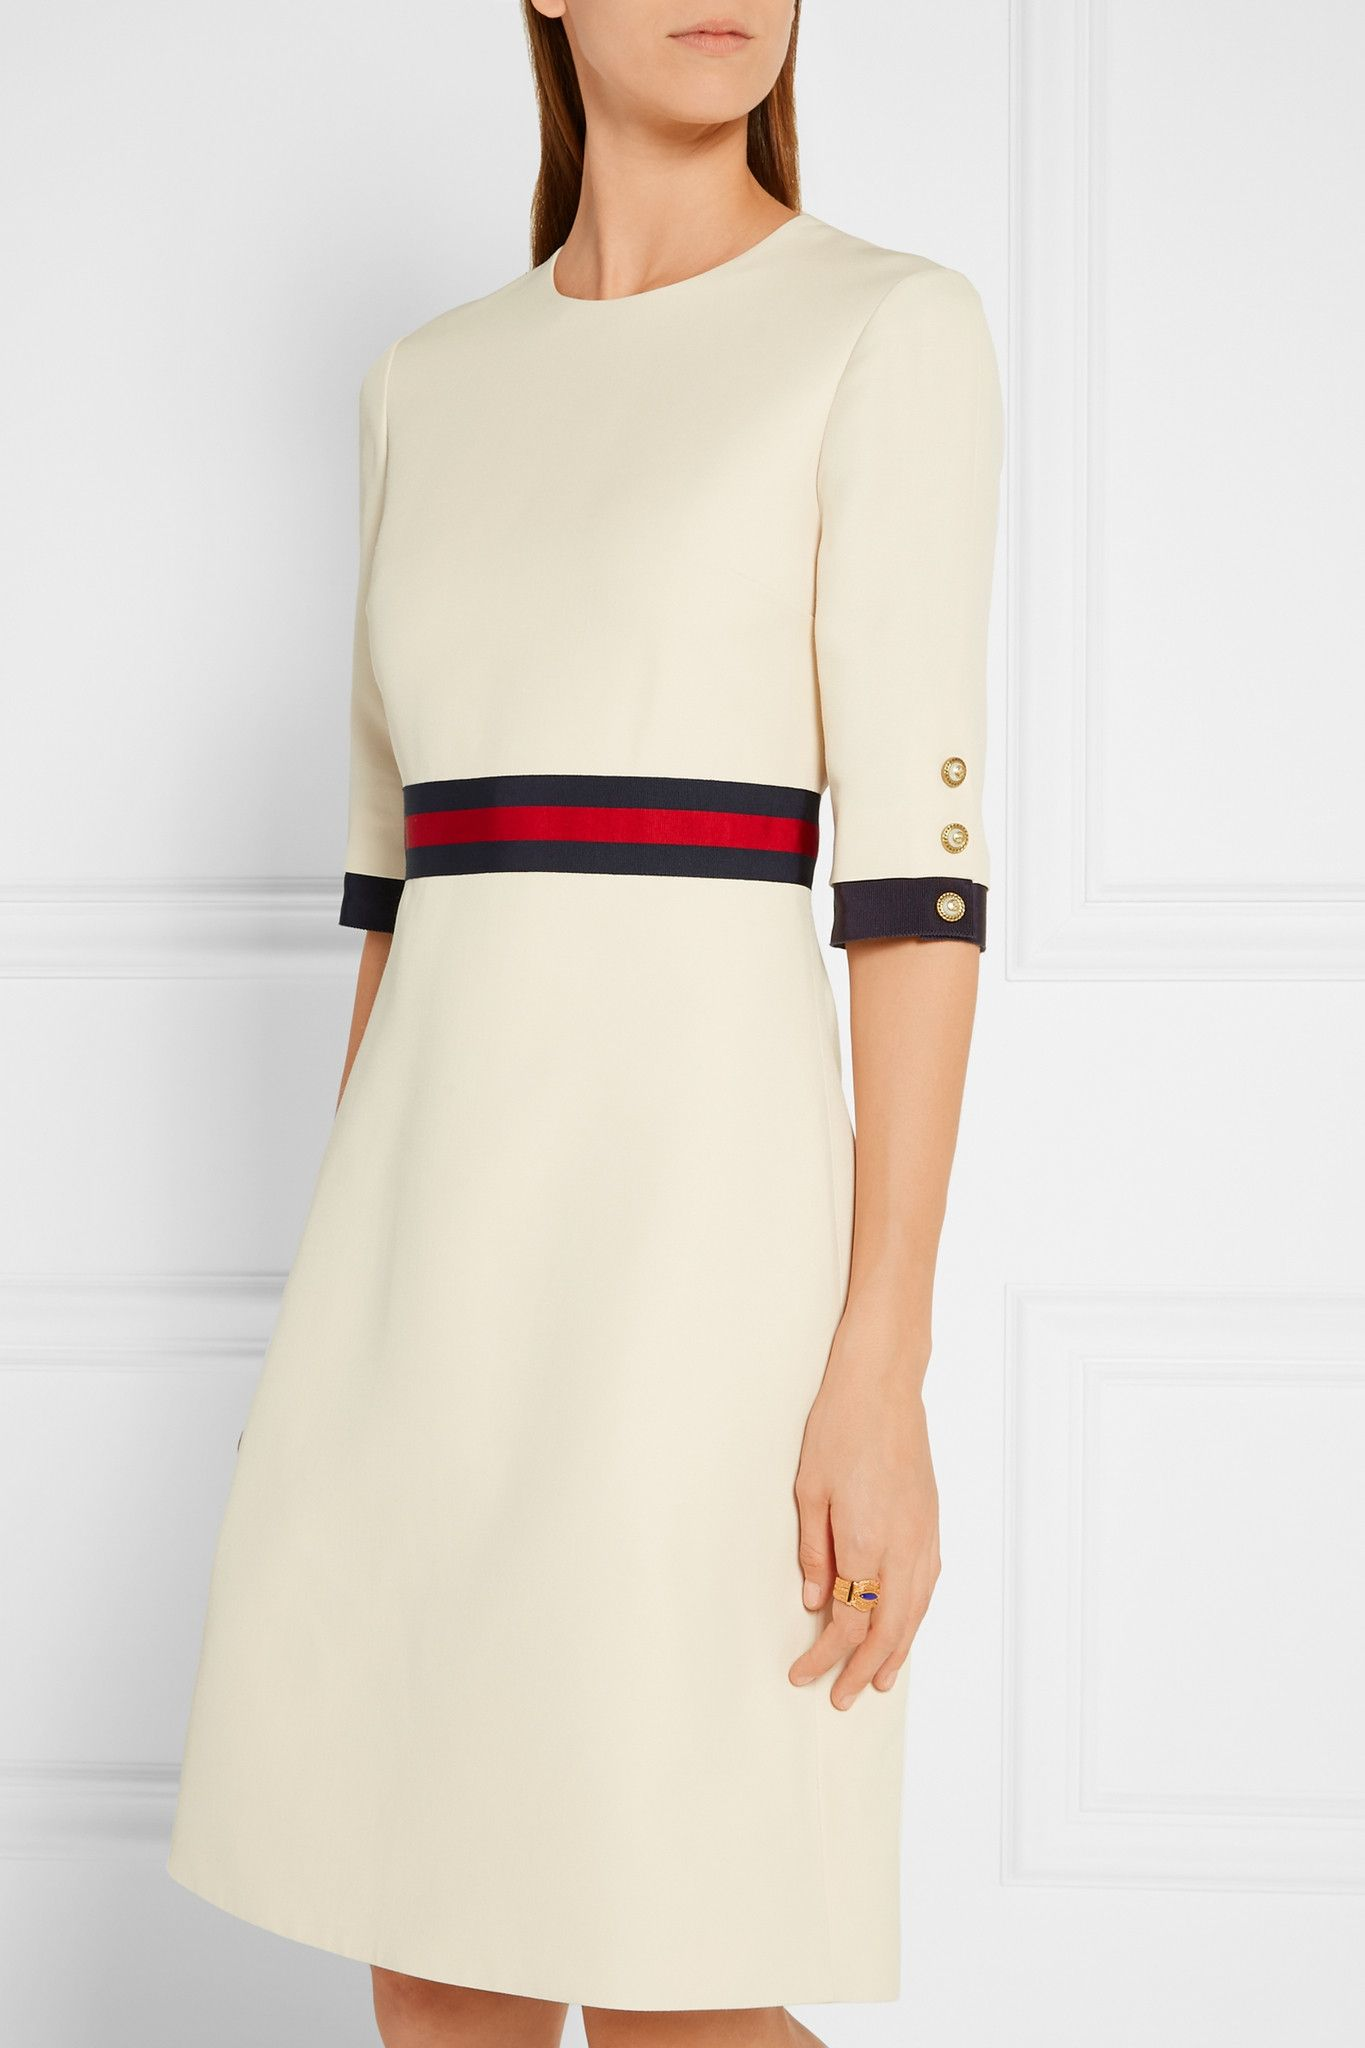 71d66885ef0fc7 Buy Gucci Women's Multicolor Grosgrain-trimmed Wool And Silk-blend Mini  Dress, starting at $2200. Similar products also available. SALE now on!